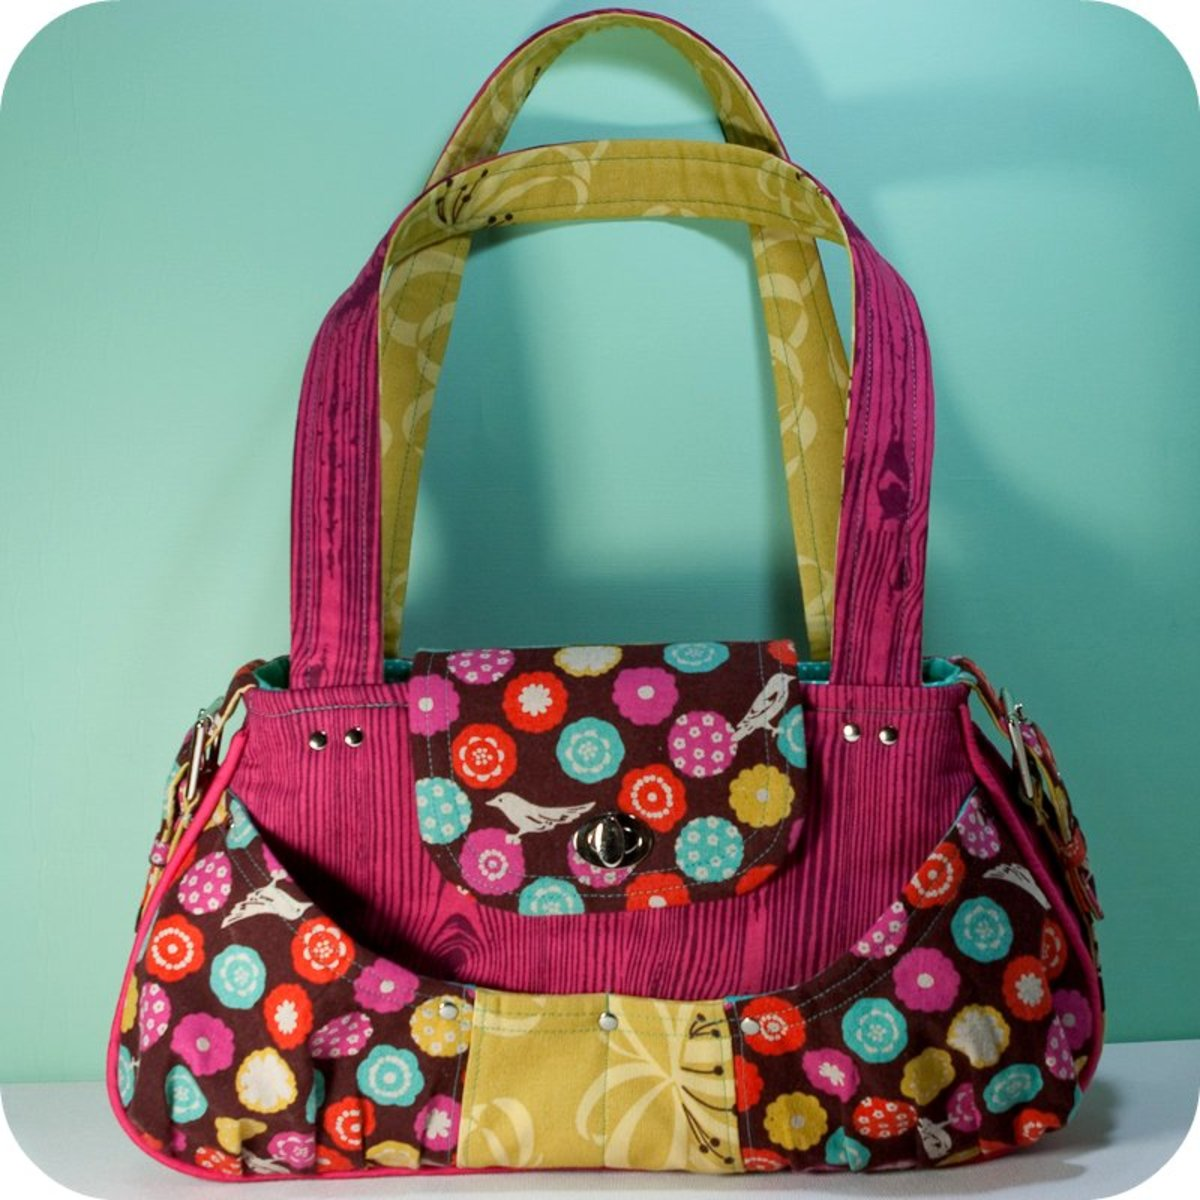 you may find a great one of a kind bag at a bag swap party so get swapping.